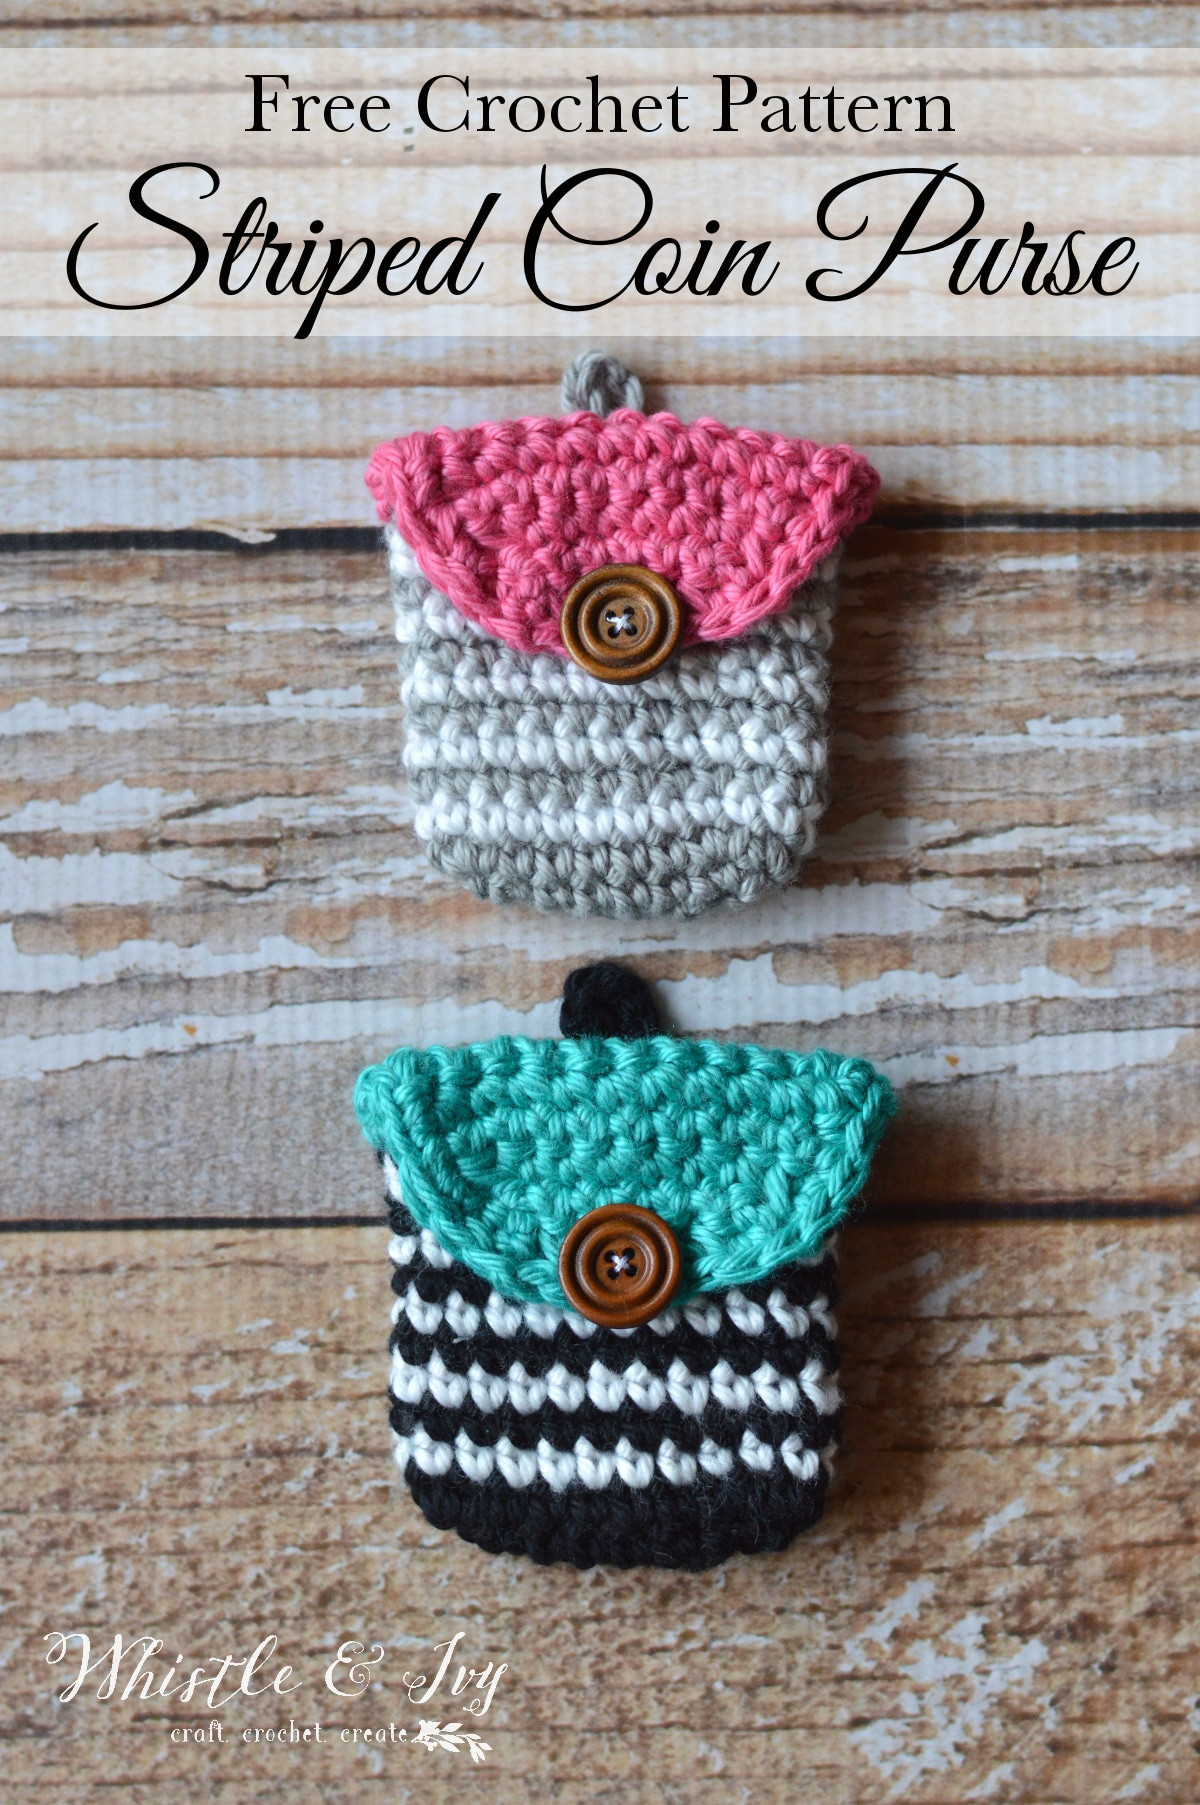 Crochet Backpack Pattern Awesome Crochet Striped Coin Purse Whistle and Ivy Of Perfect 44 Pictures Crochet Backpack Pattern